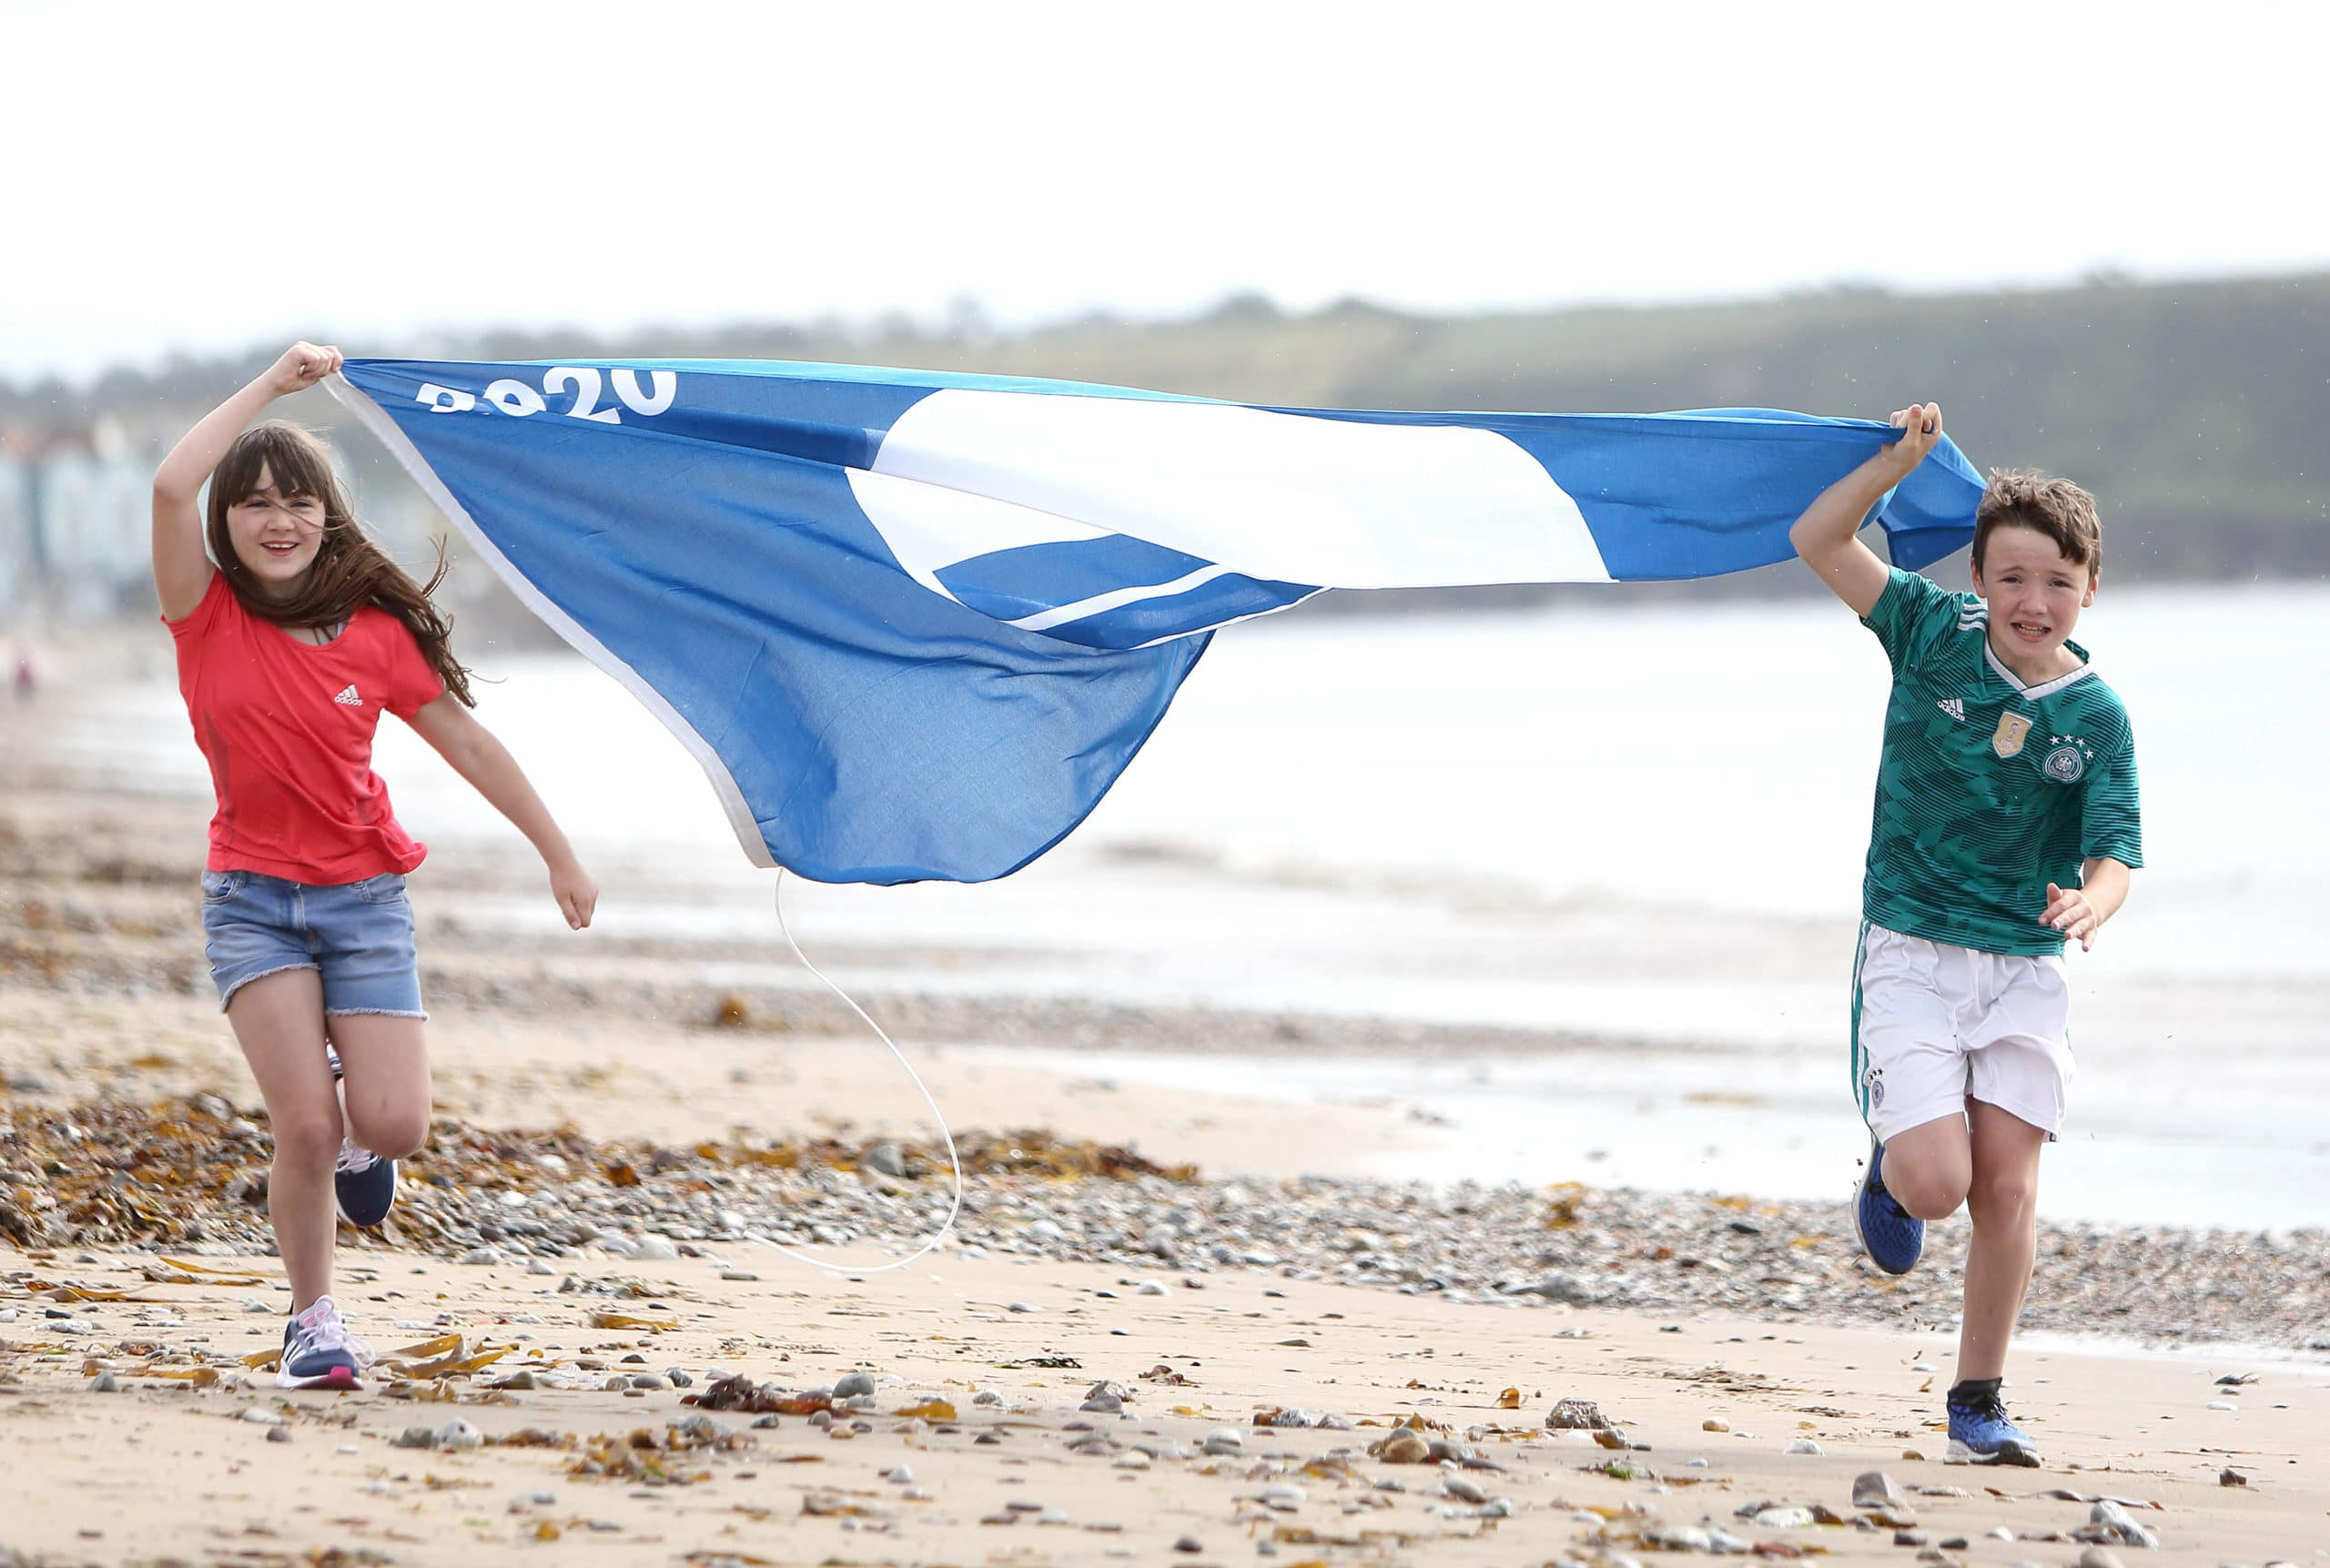 County Cork beaches awarded 8 Blue Flags and record number of Green Coast Awards